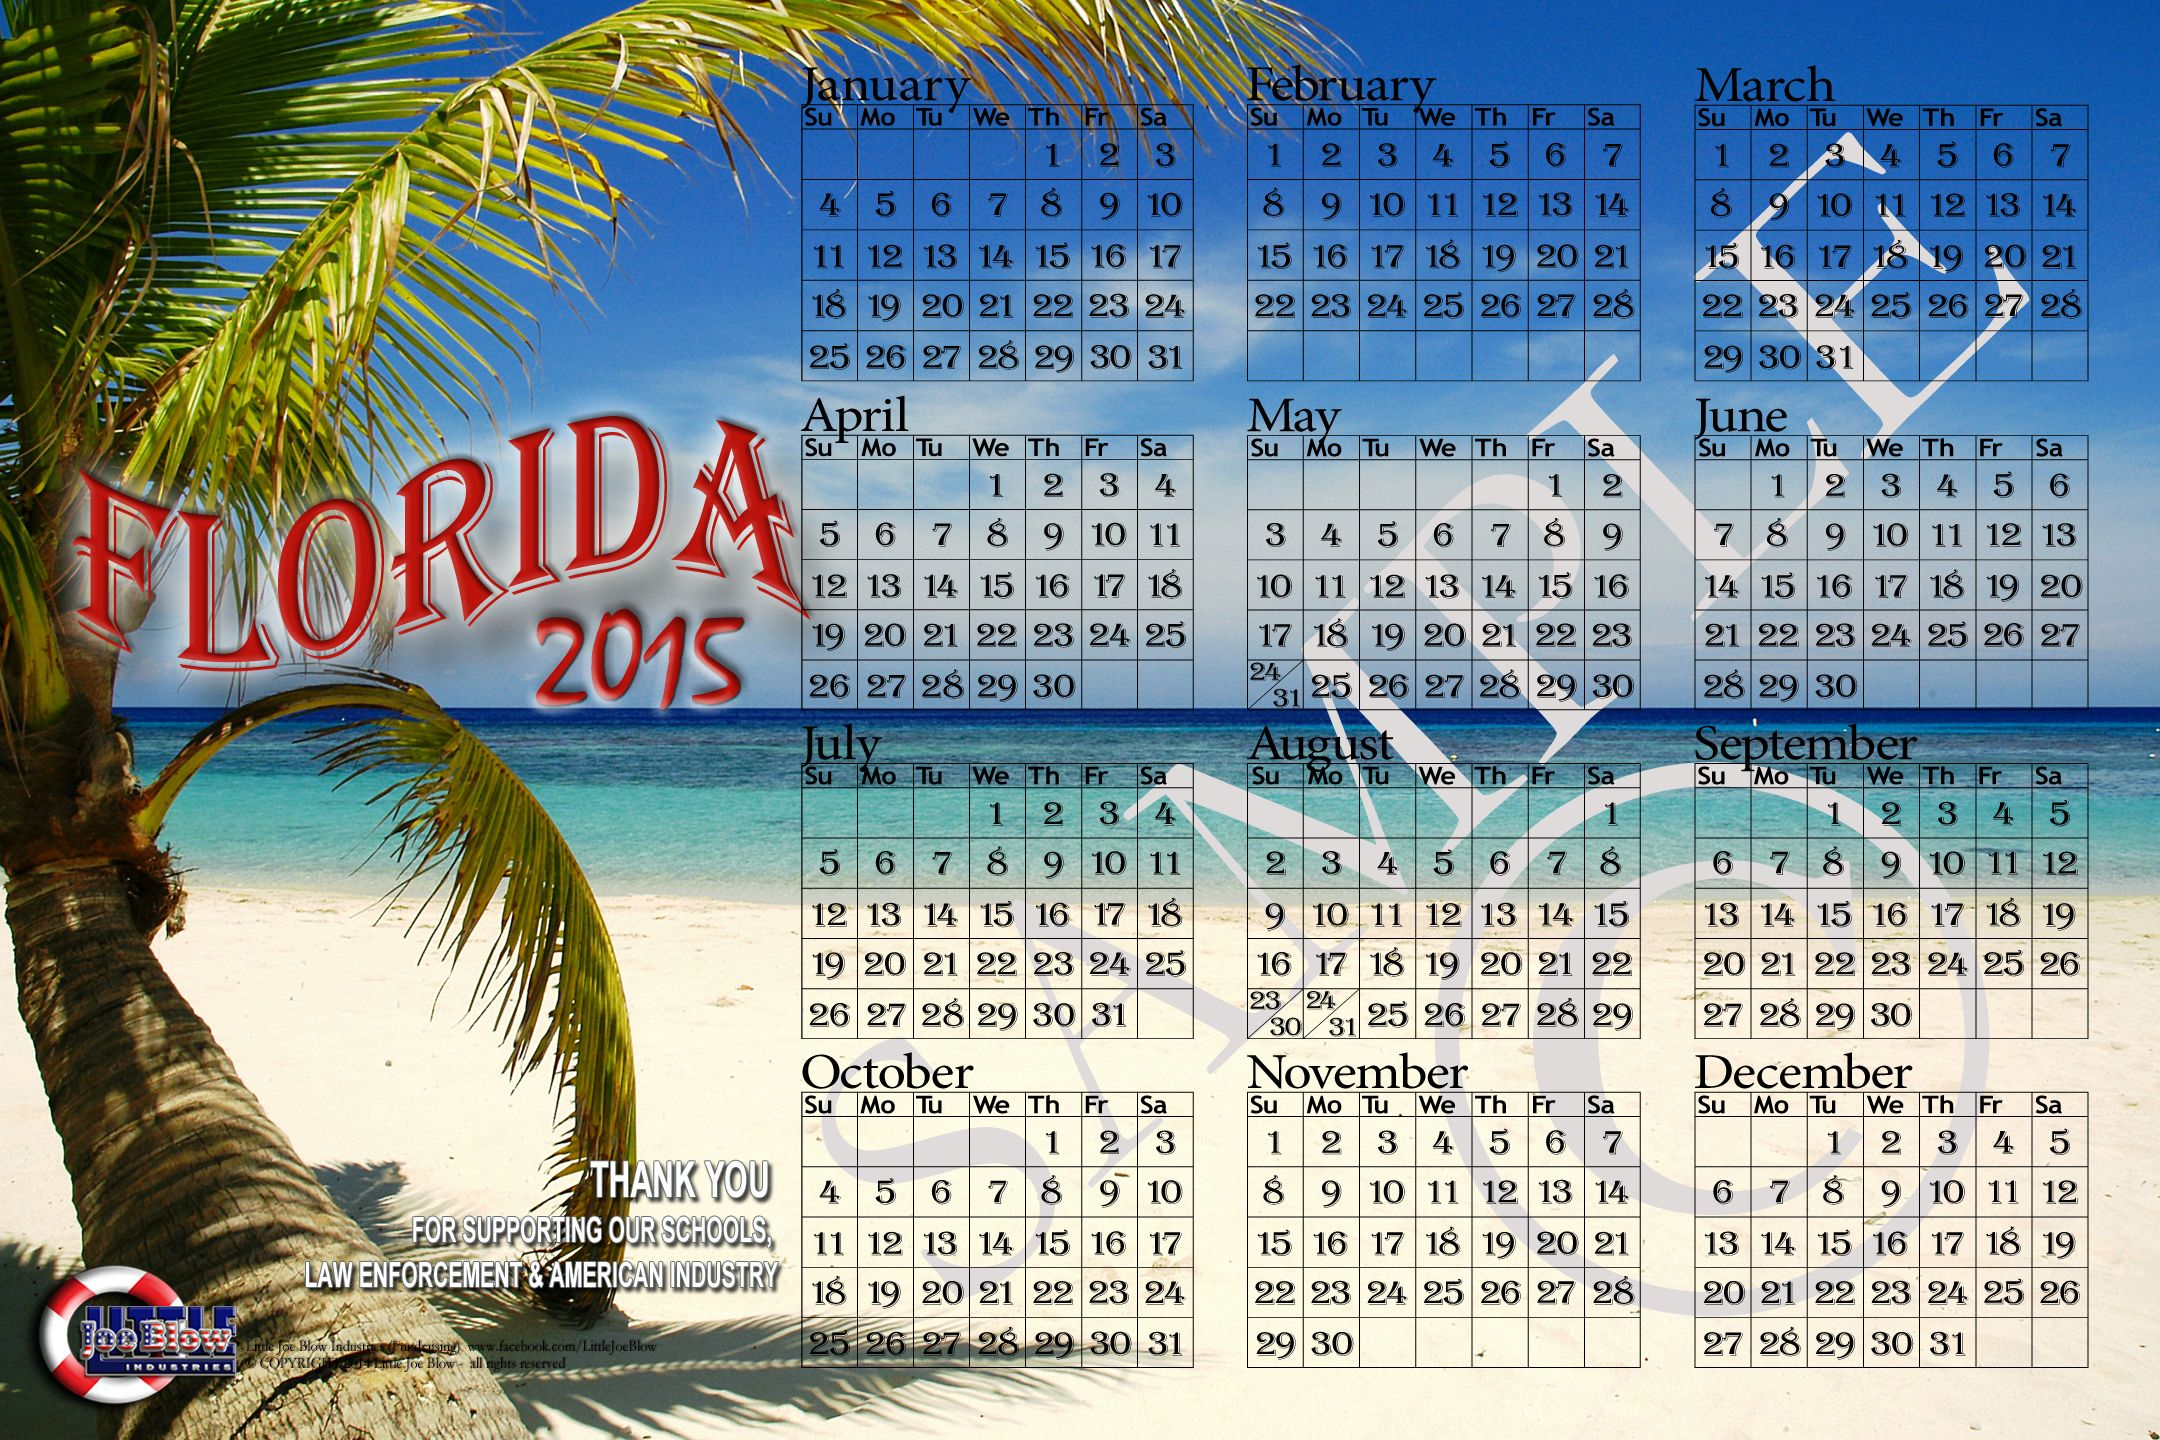 2015 - $25 ---> SCHOOL FUNDRAISING Poster Photographic Wall Calendar (photographic) ---> $10 donation p/calendar to your school ---.> $2.00 donation per calendar to a local law enforcement office of your choice.